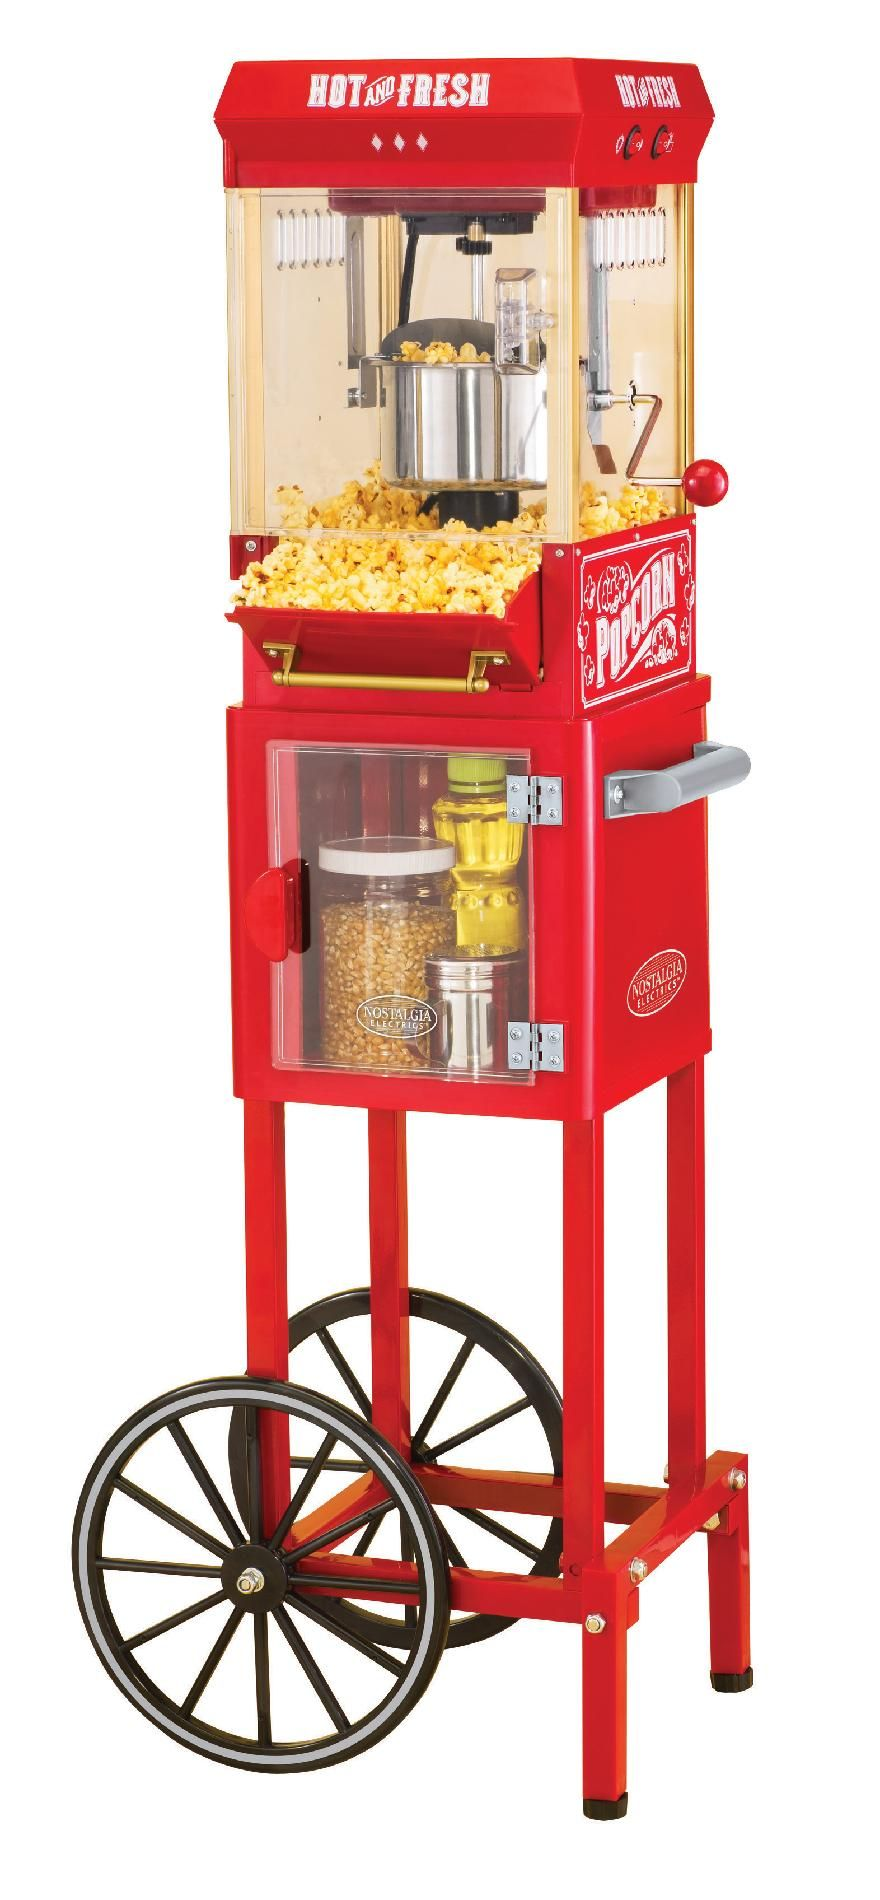 This Old Fashioned Kettle Popcorn Maker Is A Convenient, Tabletop Sized  Party Pleaser.